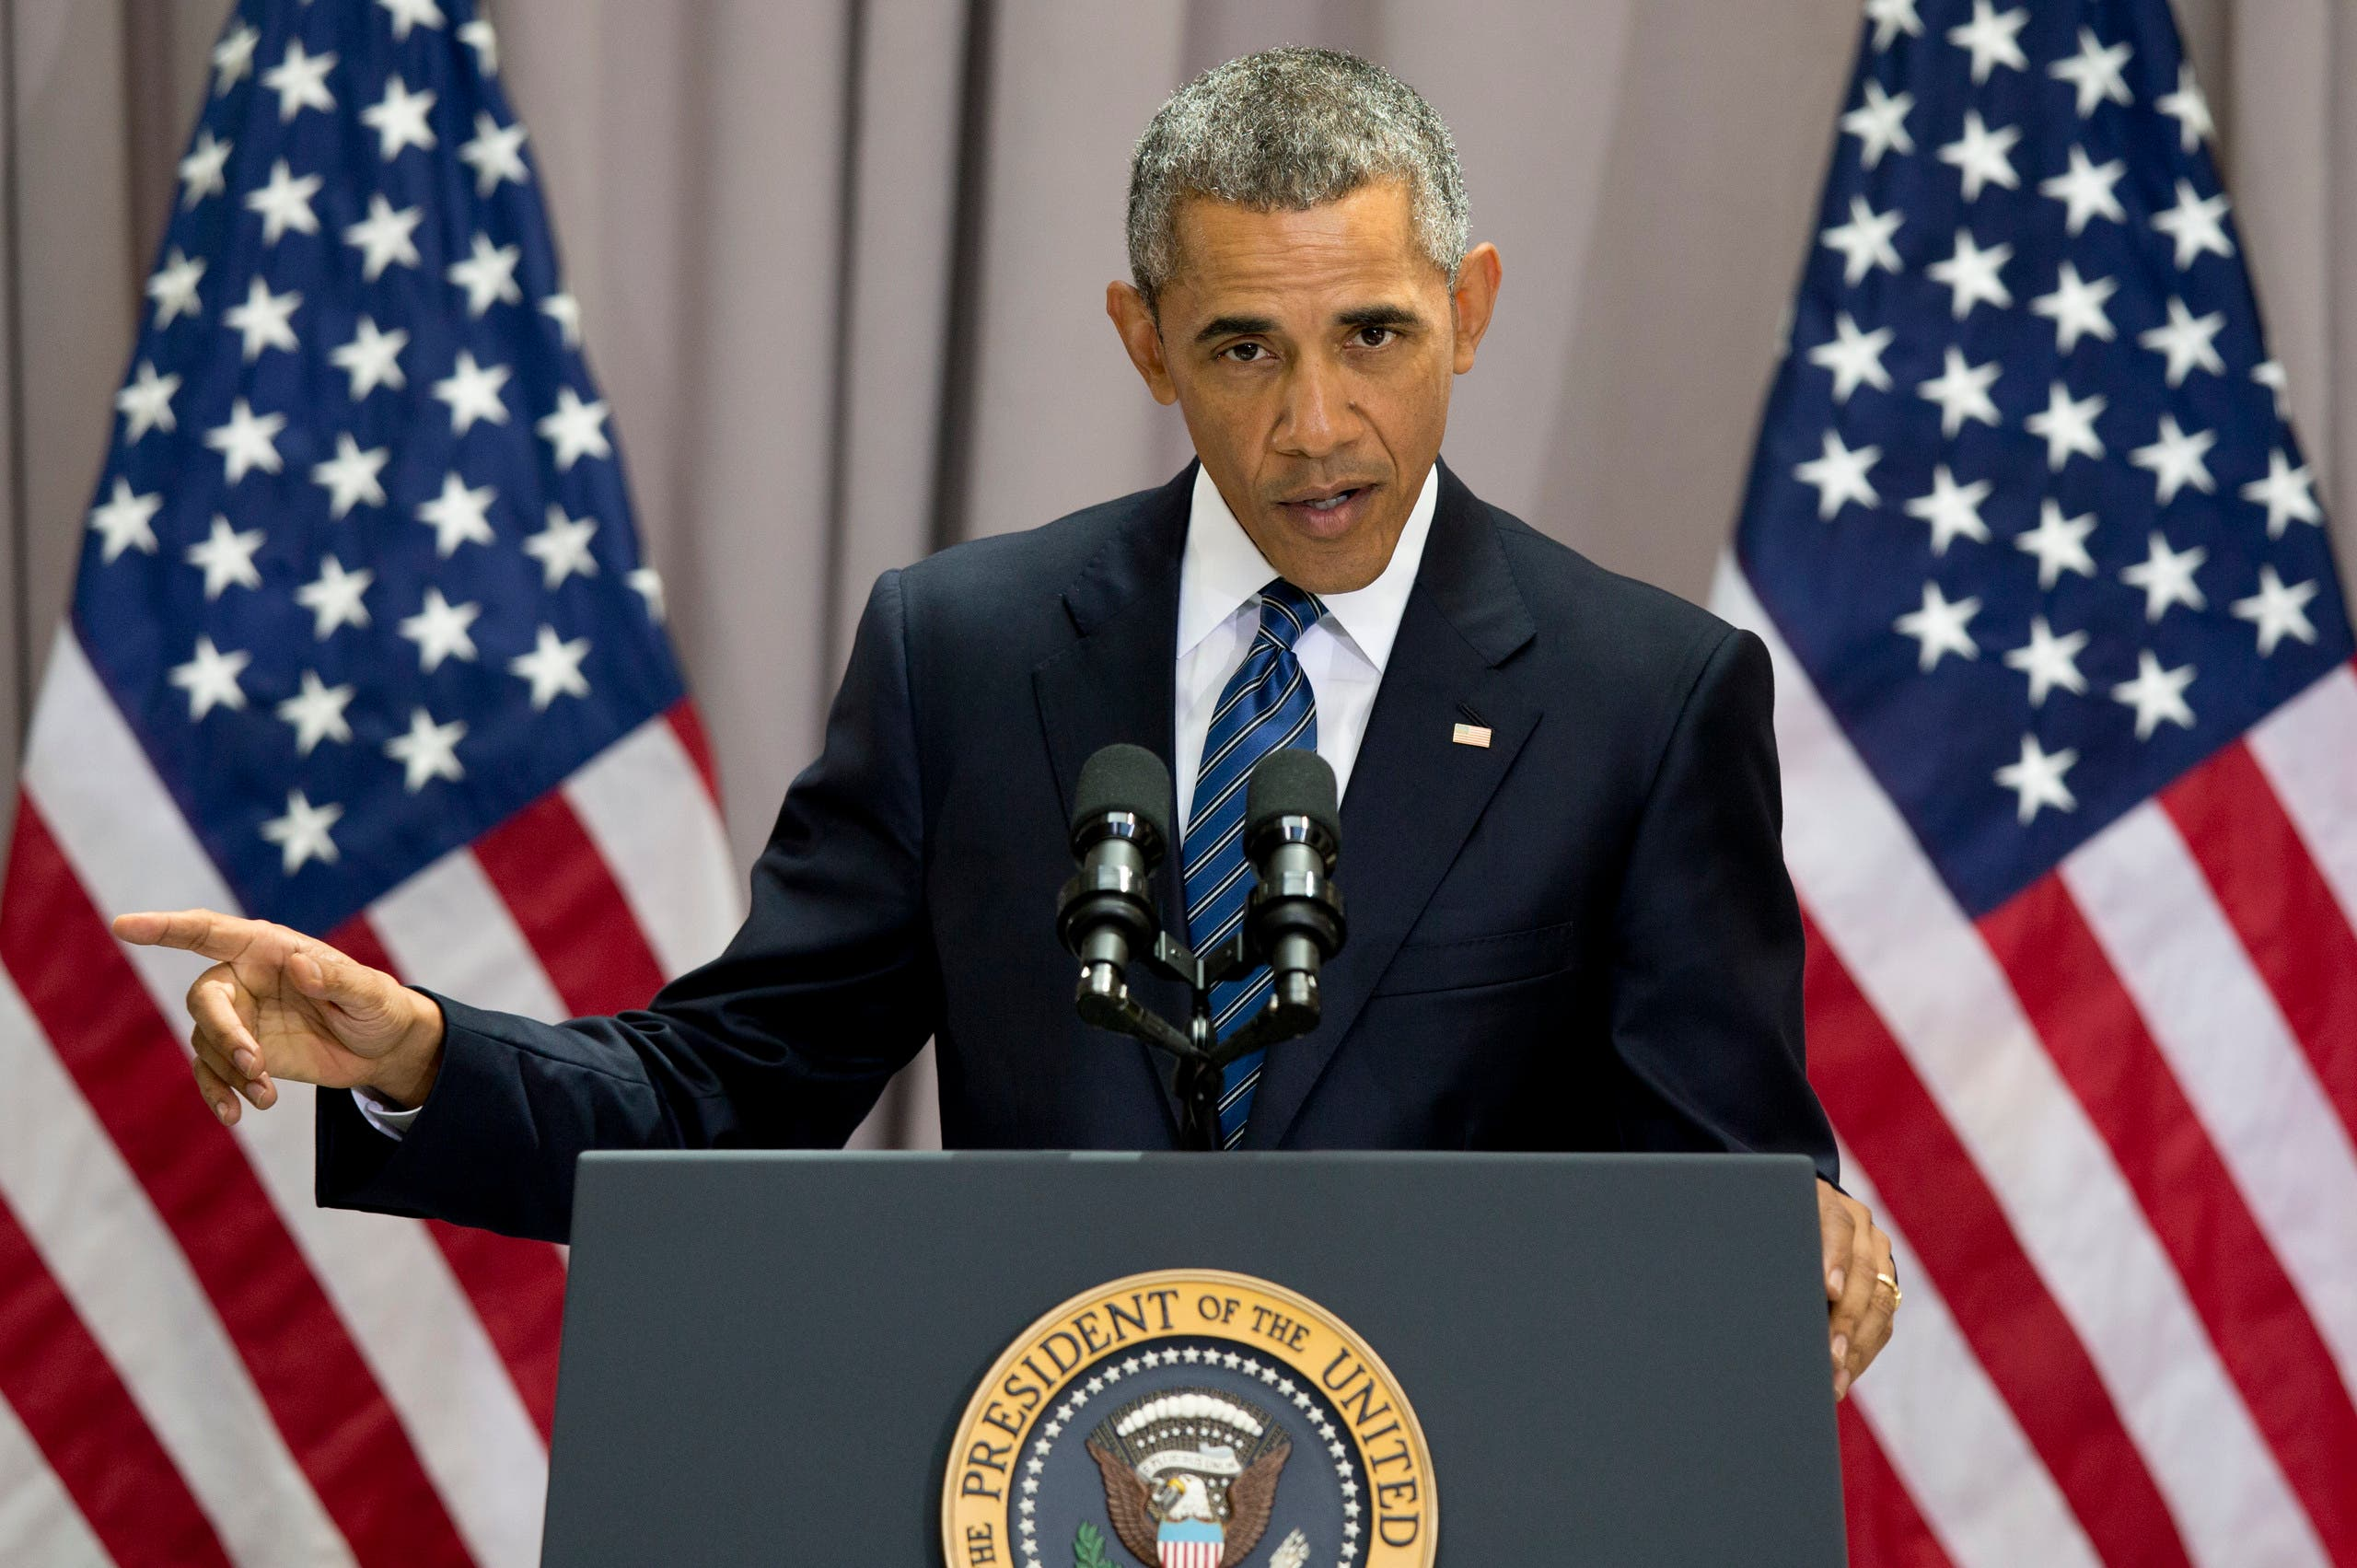 President Barack Obama speaks about the nuclear deal with Iran, Wednesday, Aug. 5, 2015. (AP)